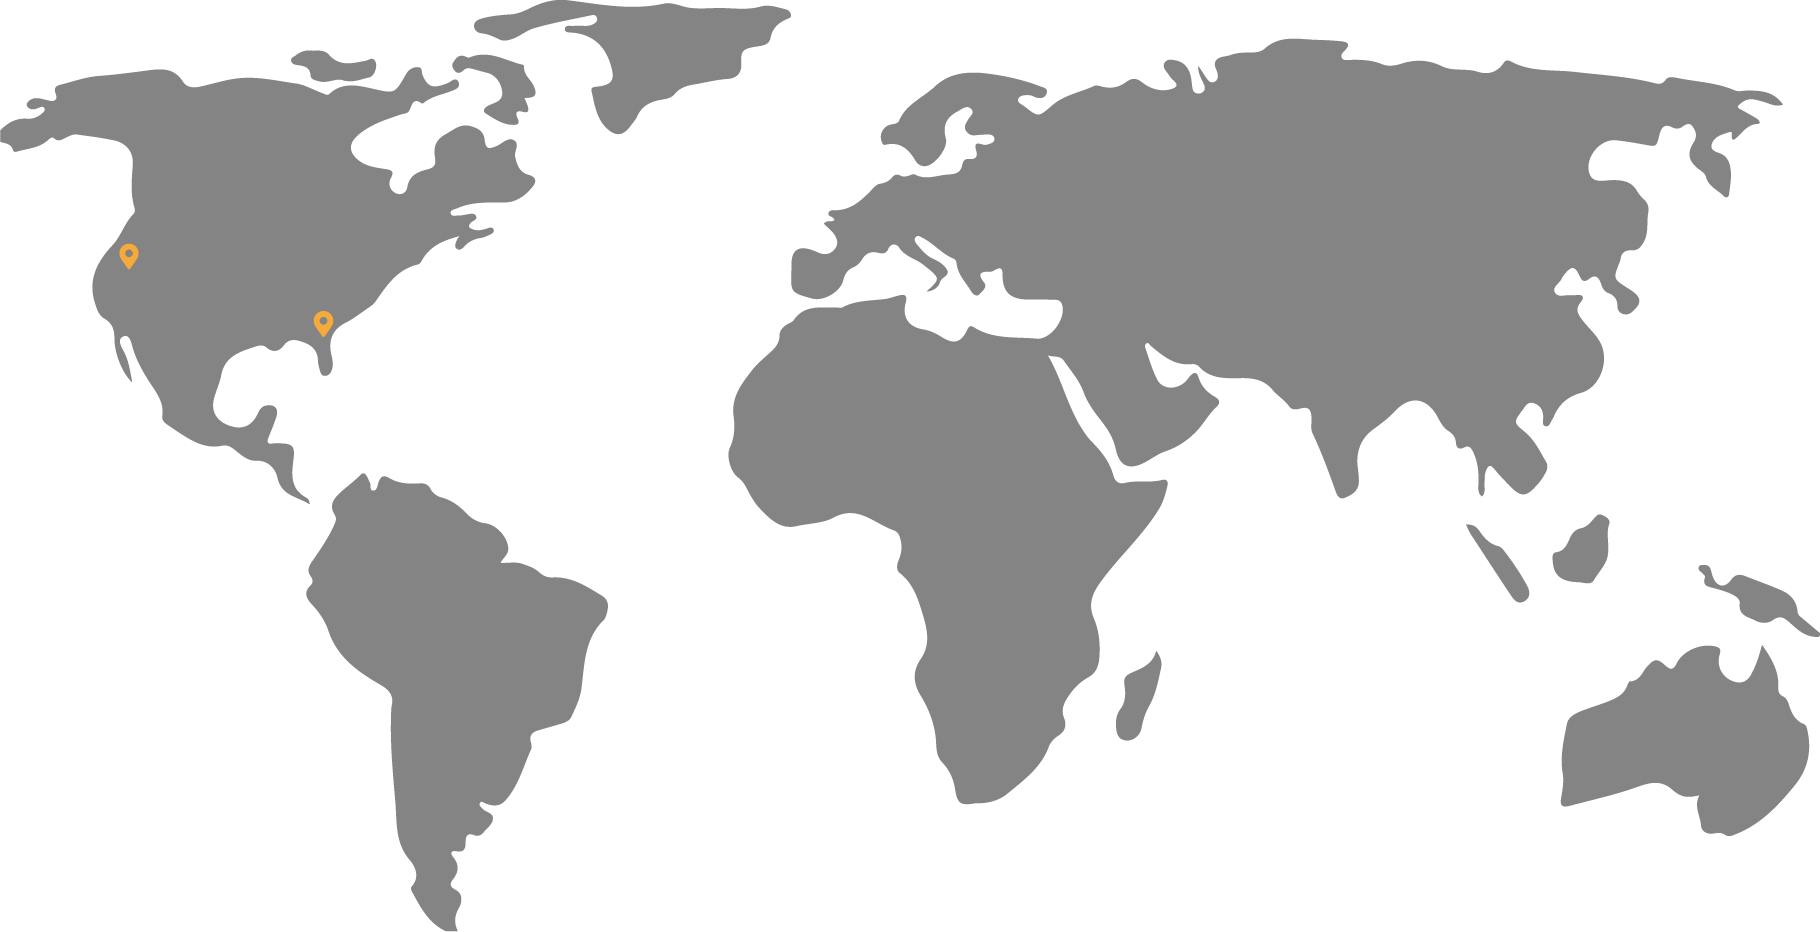 OUR map_1.png